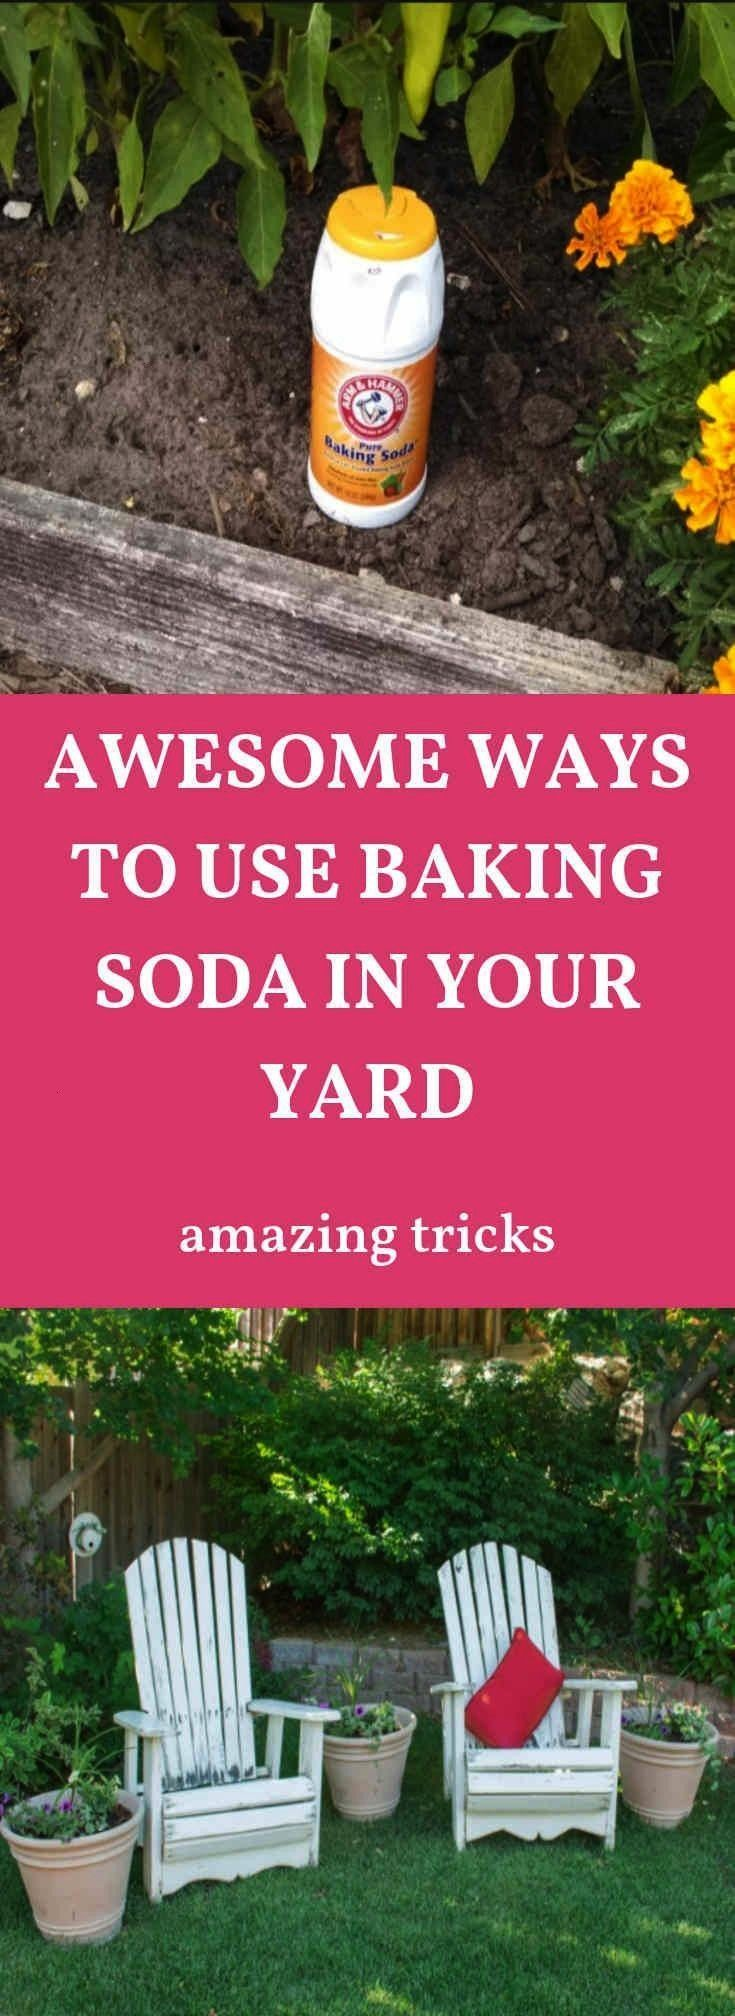 #combaking #reason #garden #baking #house #great #about #find #haha #soda #the #why #see #outGreat. Find out about Baking Soda Garden see the reason why. HAHA.    Com...#bakingGreat. Find out about Baking Soda Garden see the reason why. HAHA.    Com...#baking  Fleas, ants, and roaches are one of the most common and most annoying pests. Although there are various products on the market which are said to kill them off, most of them are packed with chemicals which do more harm than good. If ...